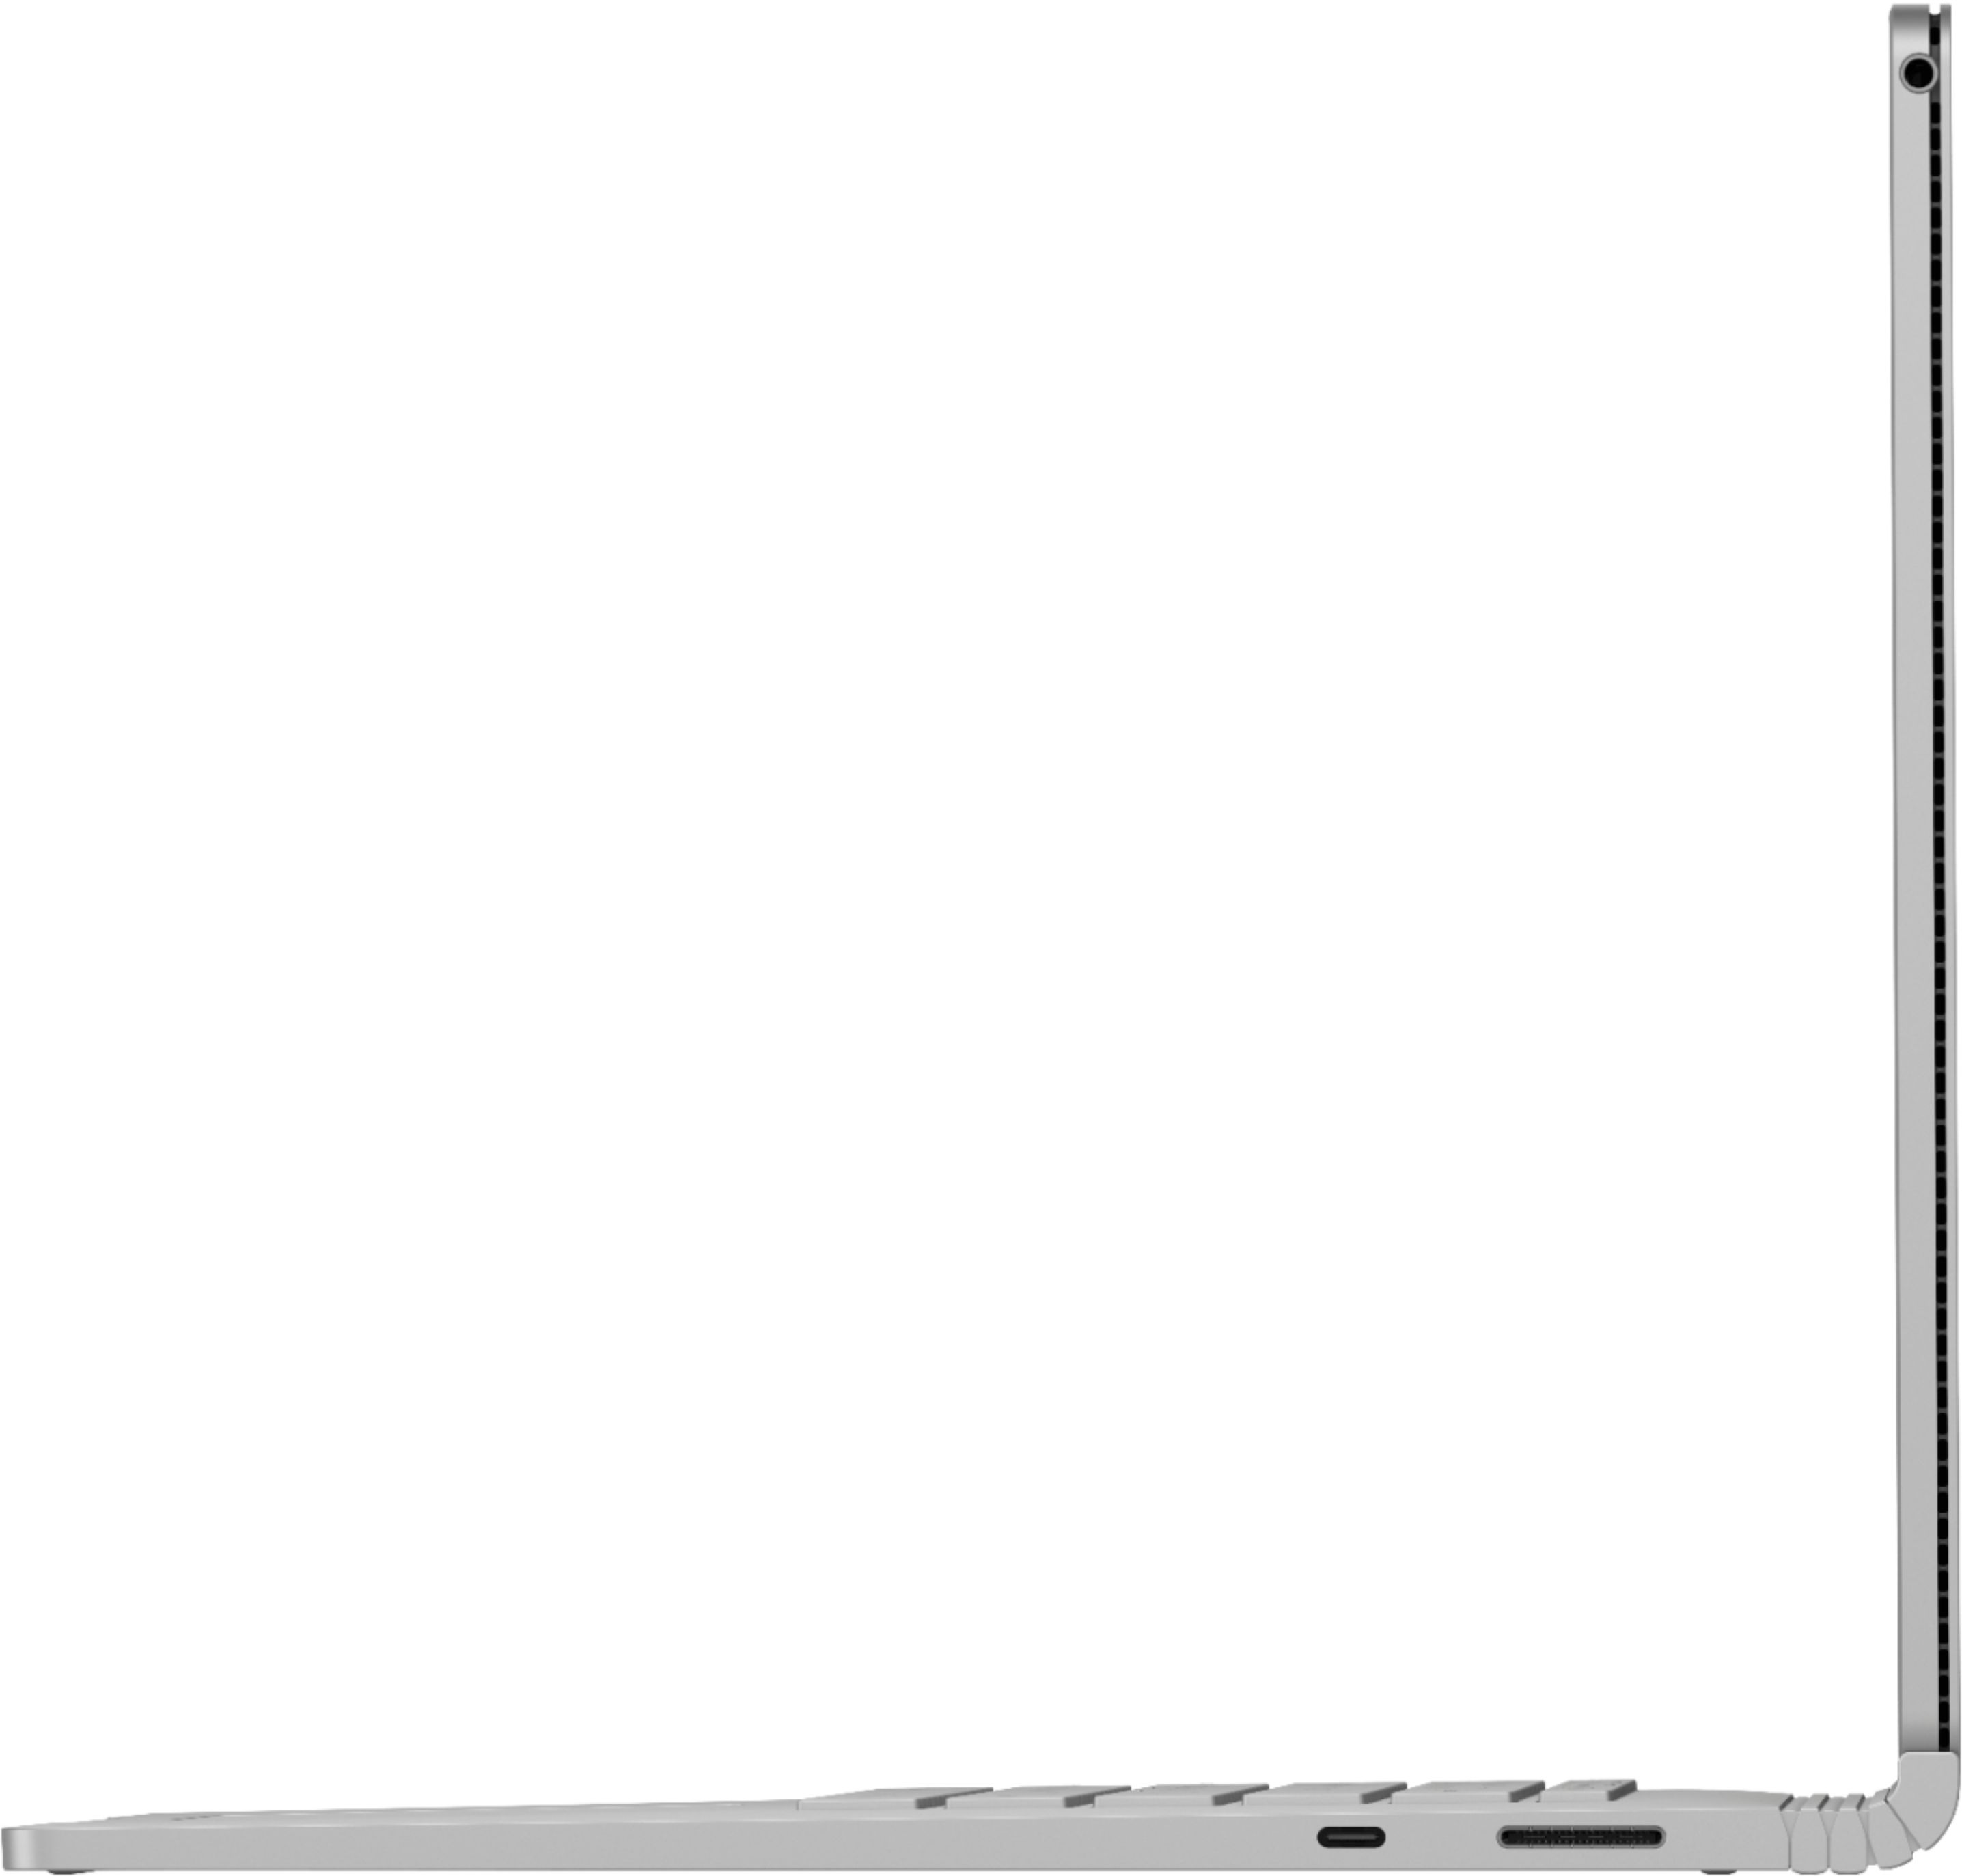 """Alt View Zoom 13. Microsoft - Surface Book 3 13.5"""" Touch-Screen PixelSense™ - 2-in-1 Laptop - Intel Core i5 - 8GB Memory - 256GB SSD - Platinum."""